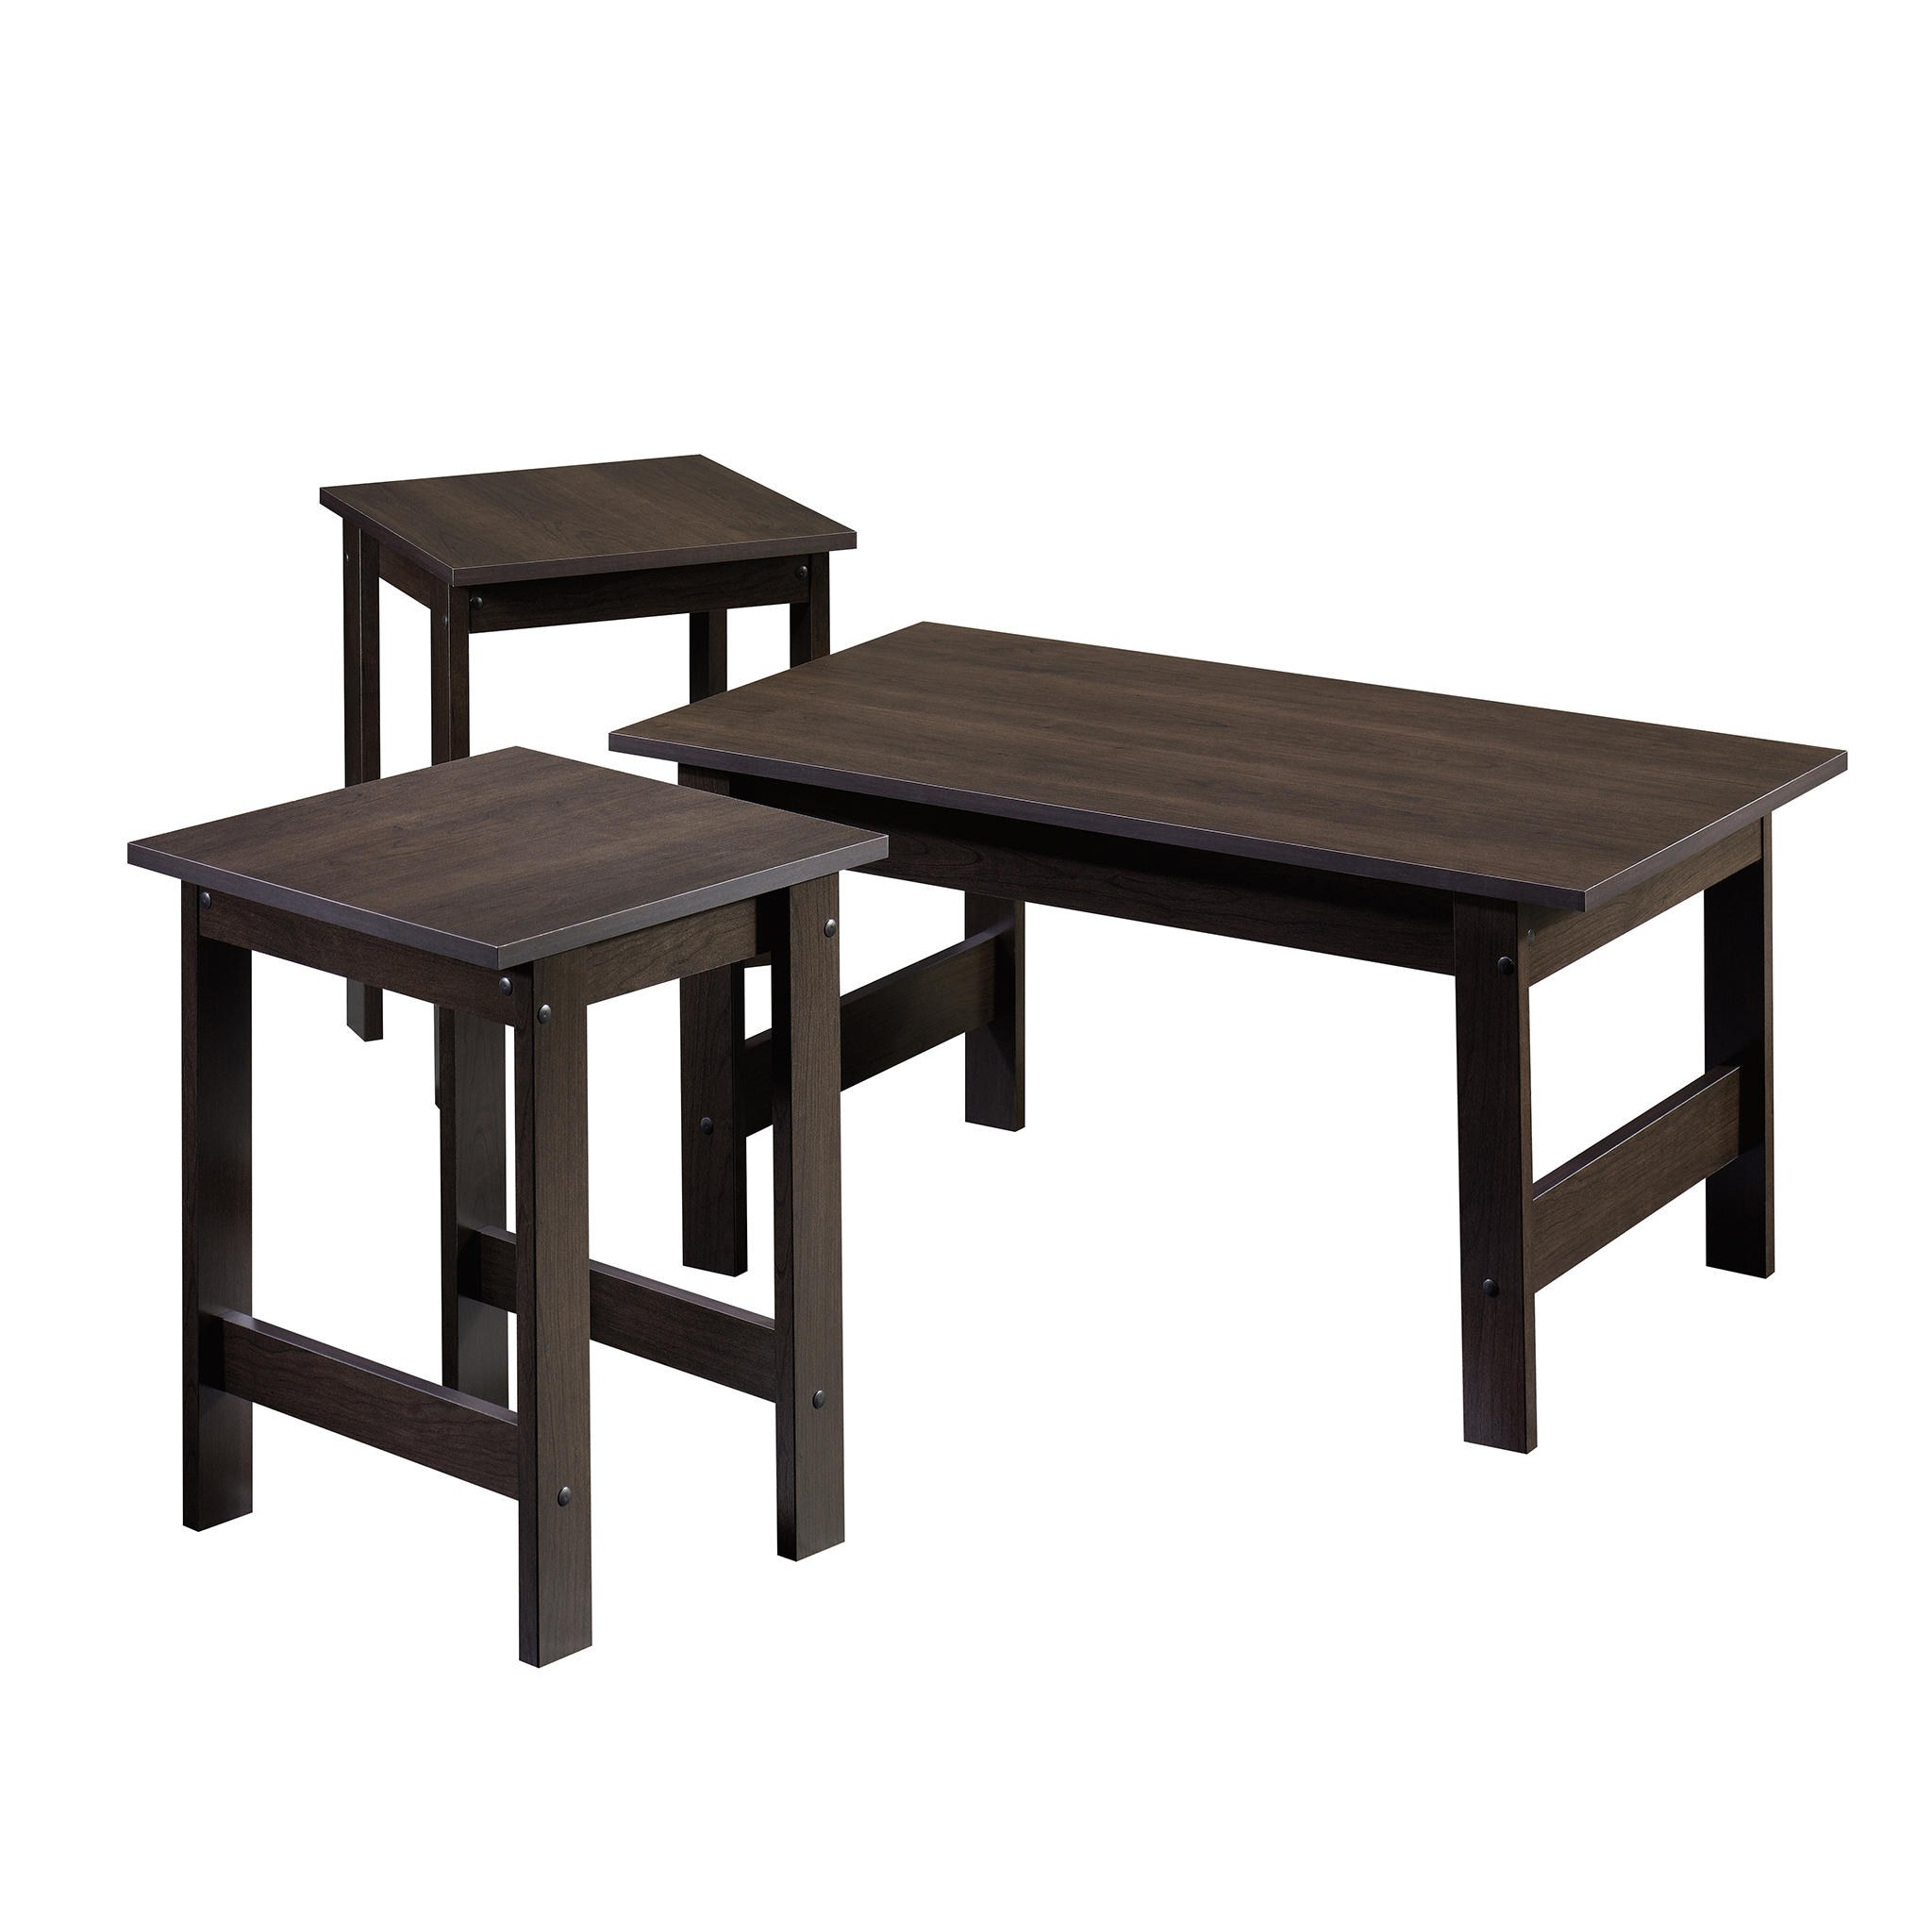 sauder beginnings pack table set multiple colors end cinnamon cherry circular outdoor ashley power black entrance ethan allen pub farmhouse legs bedside cabinets and drawers dog